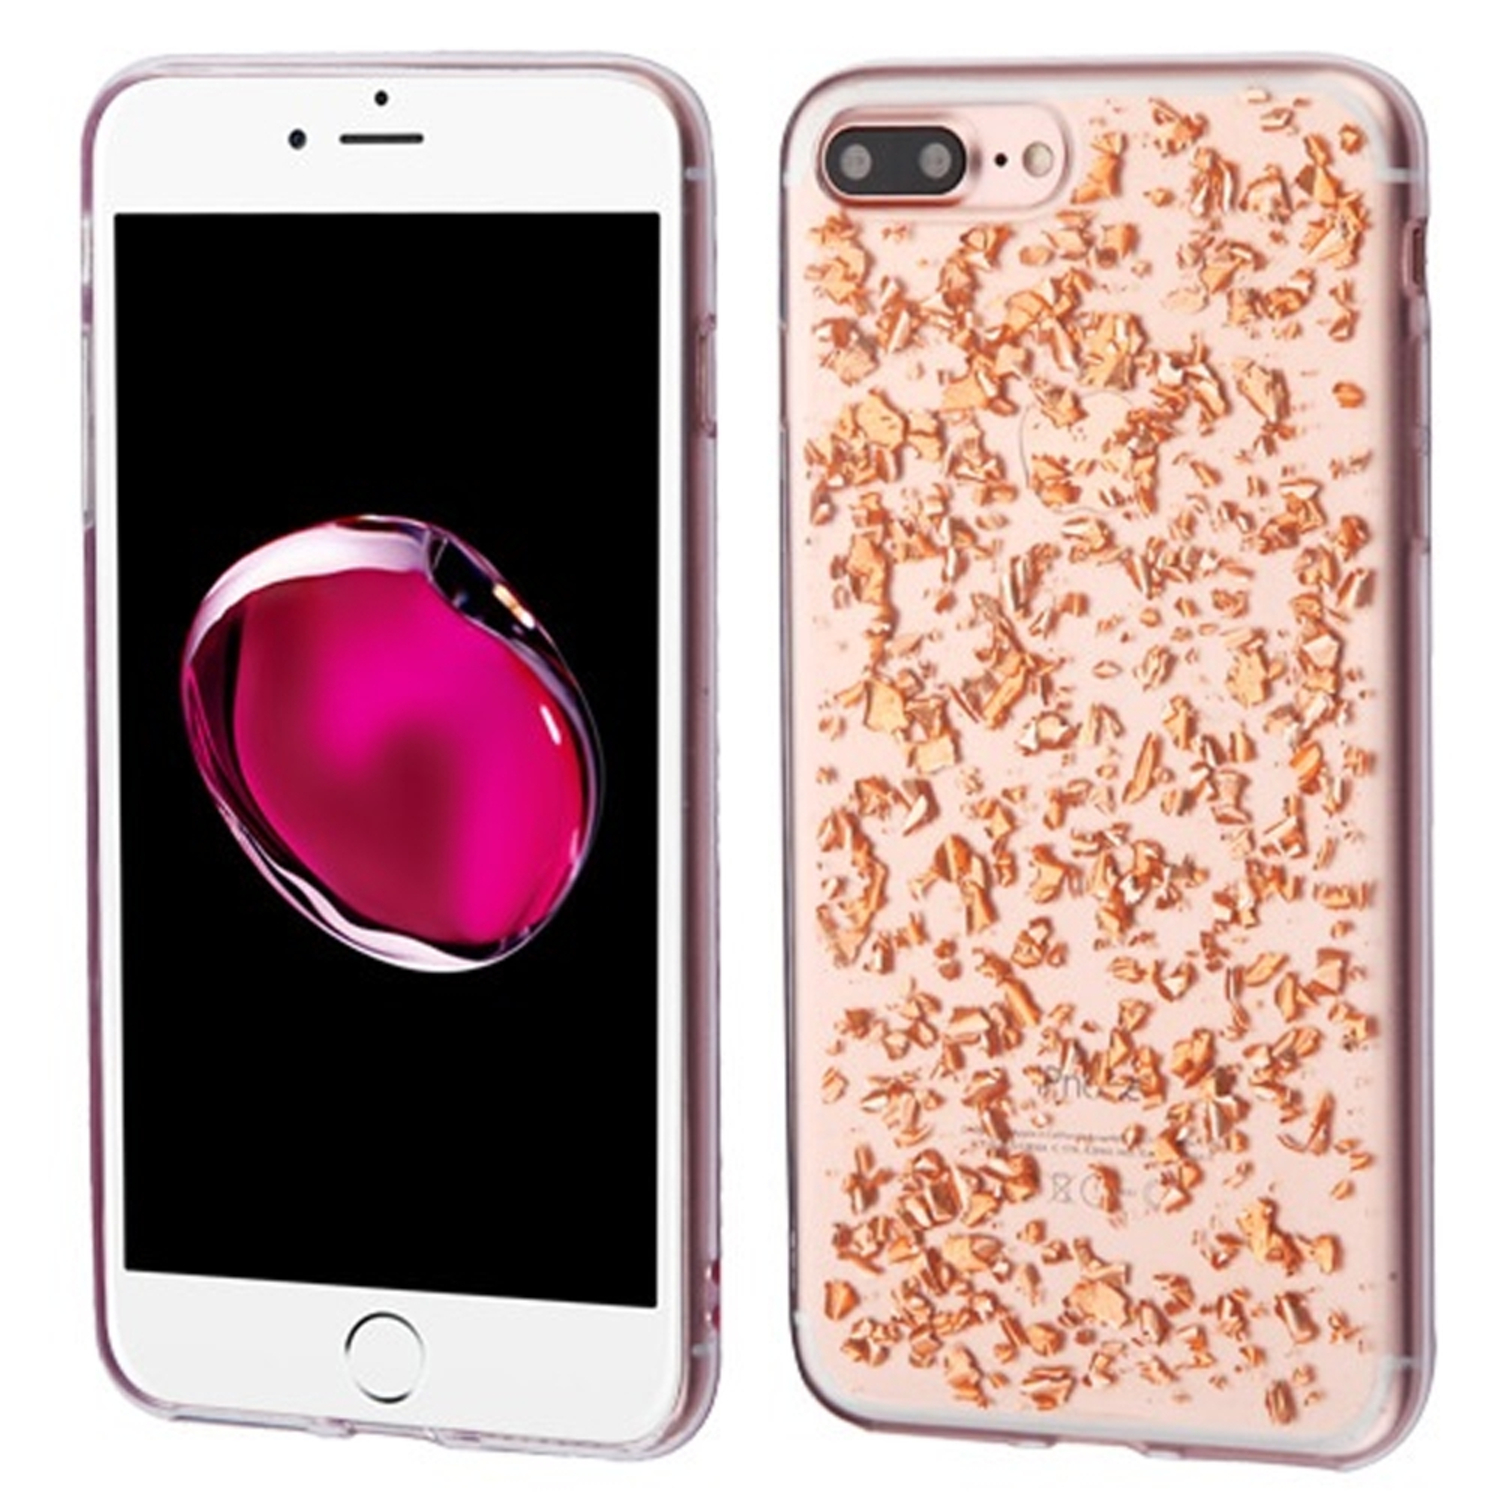 iPhone 8 Plus case, iPhone 7 Plus case, by Insten Flakes Rubber TPU Case Cover For Apple iPhone 8 Plus / iPhone 7 Plus, Rose Gold/Clear